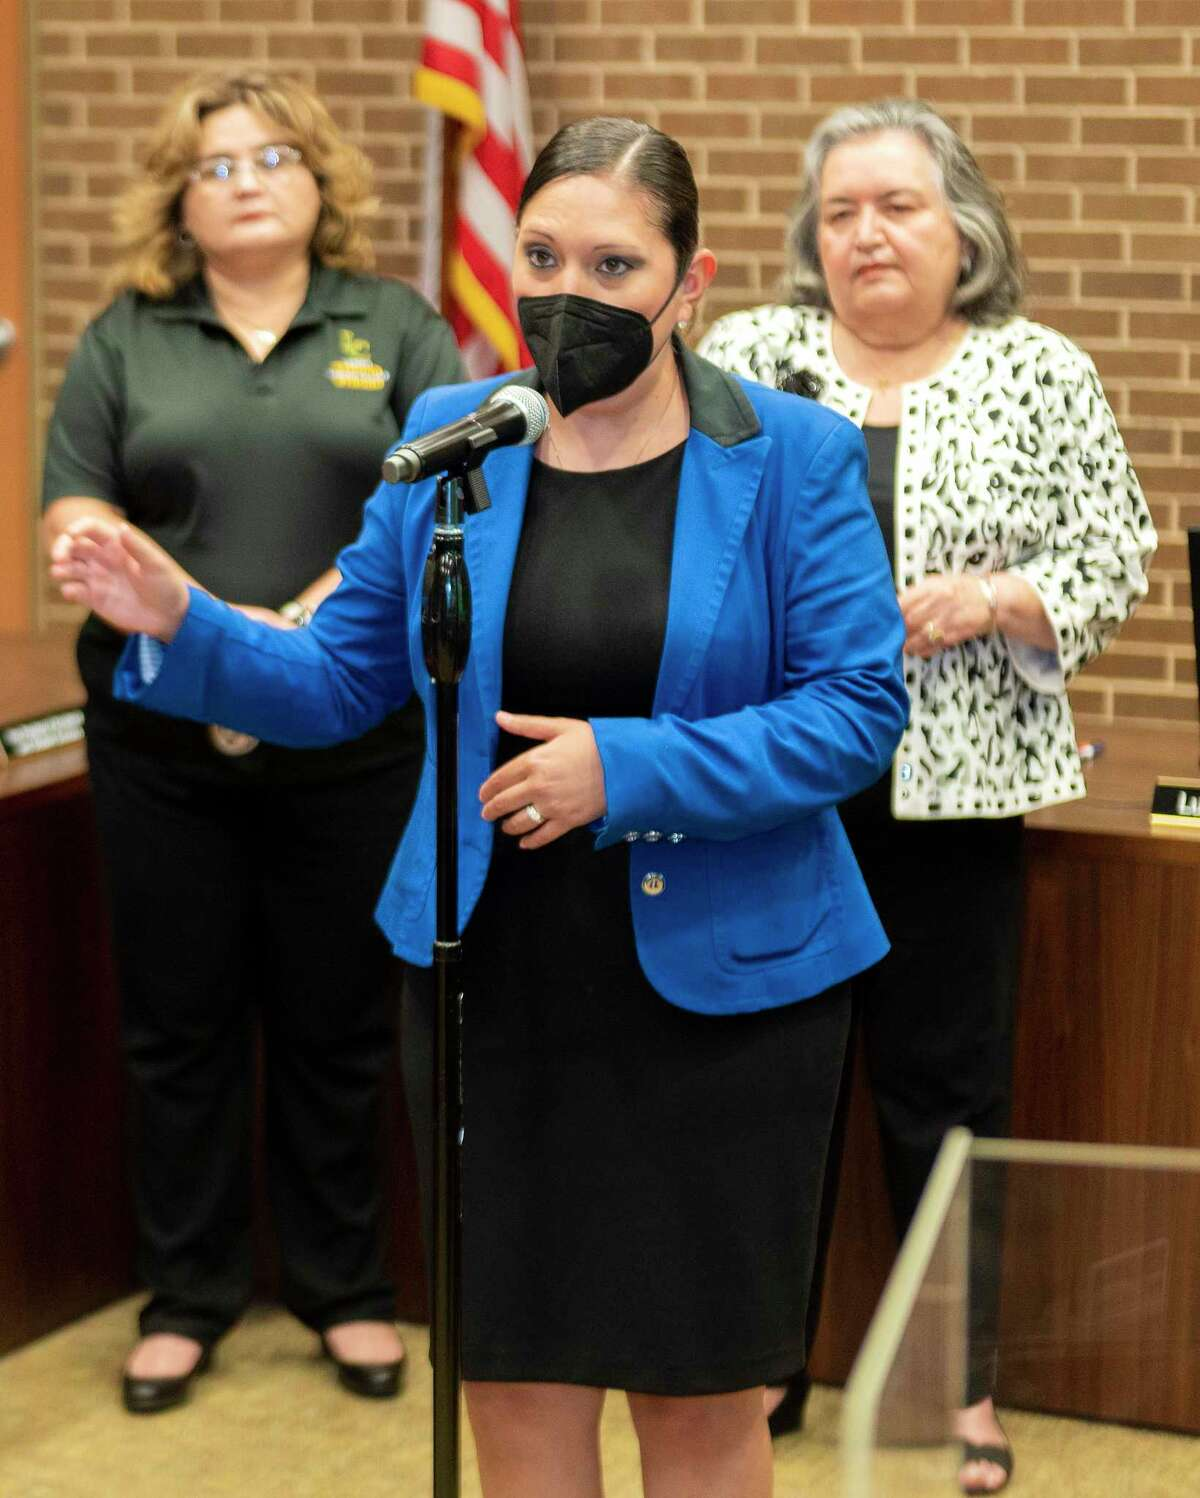 Laredo College Interim President Dr. Marisela Rodriguez Tijerina announces the Debt Forgiveness and Tuition On Us programs for students that faced economic struggle due to the COVID-19 pandemic, Tuesday, Aug. 3, 2021, at Laredo College.